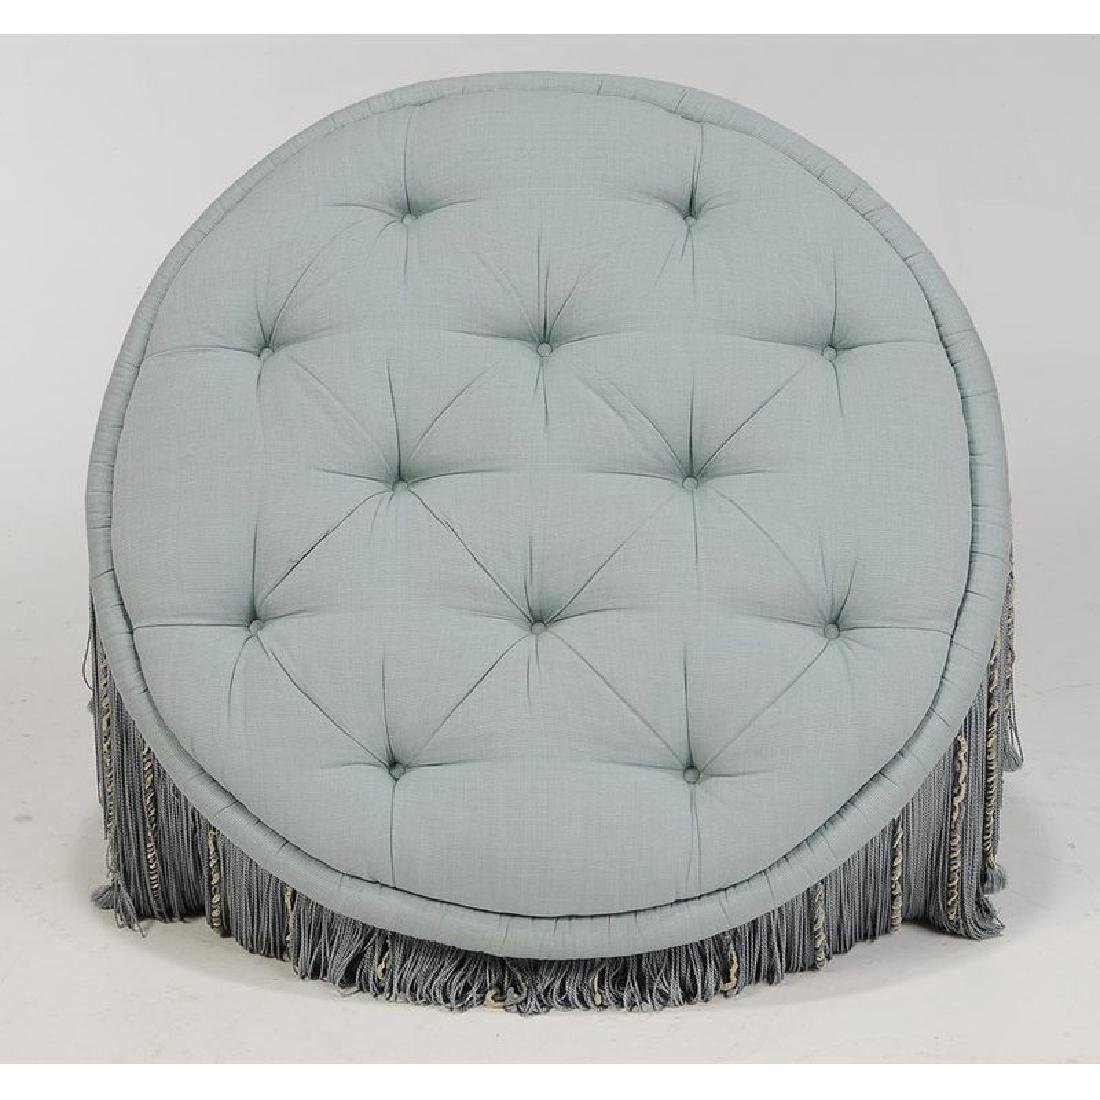 Tufted Upholstered and Tassel Decorated Ottoman - 2